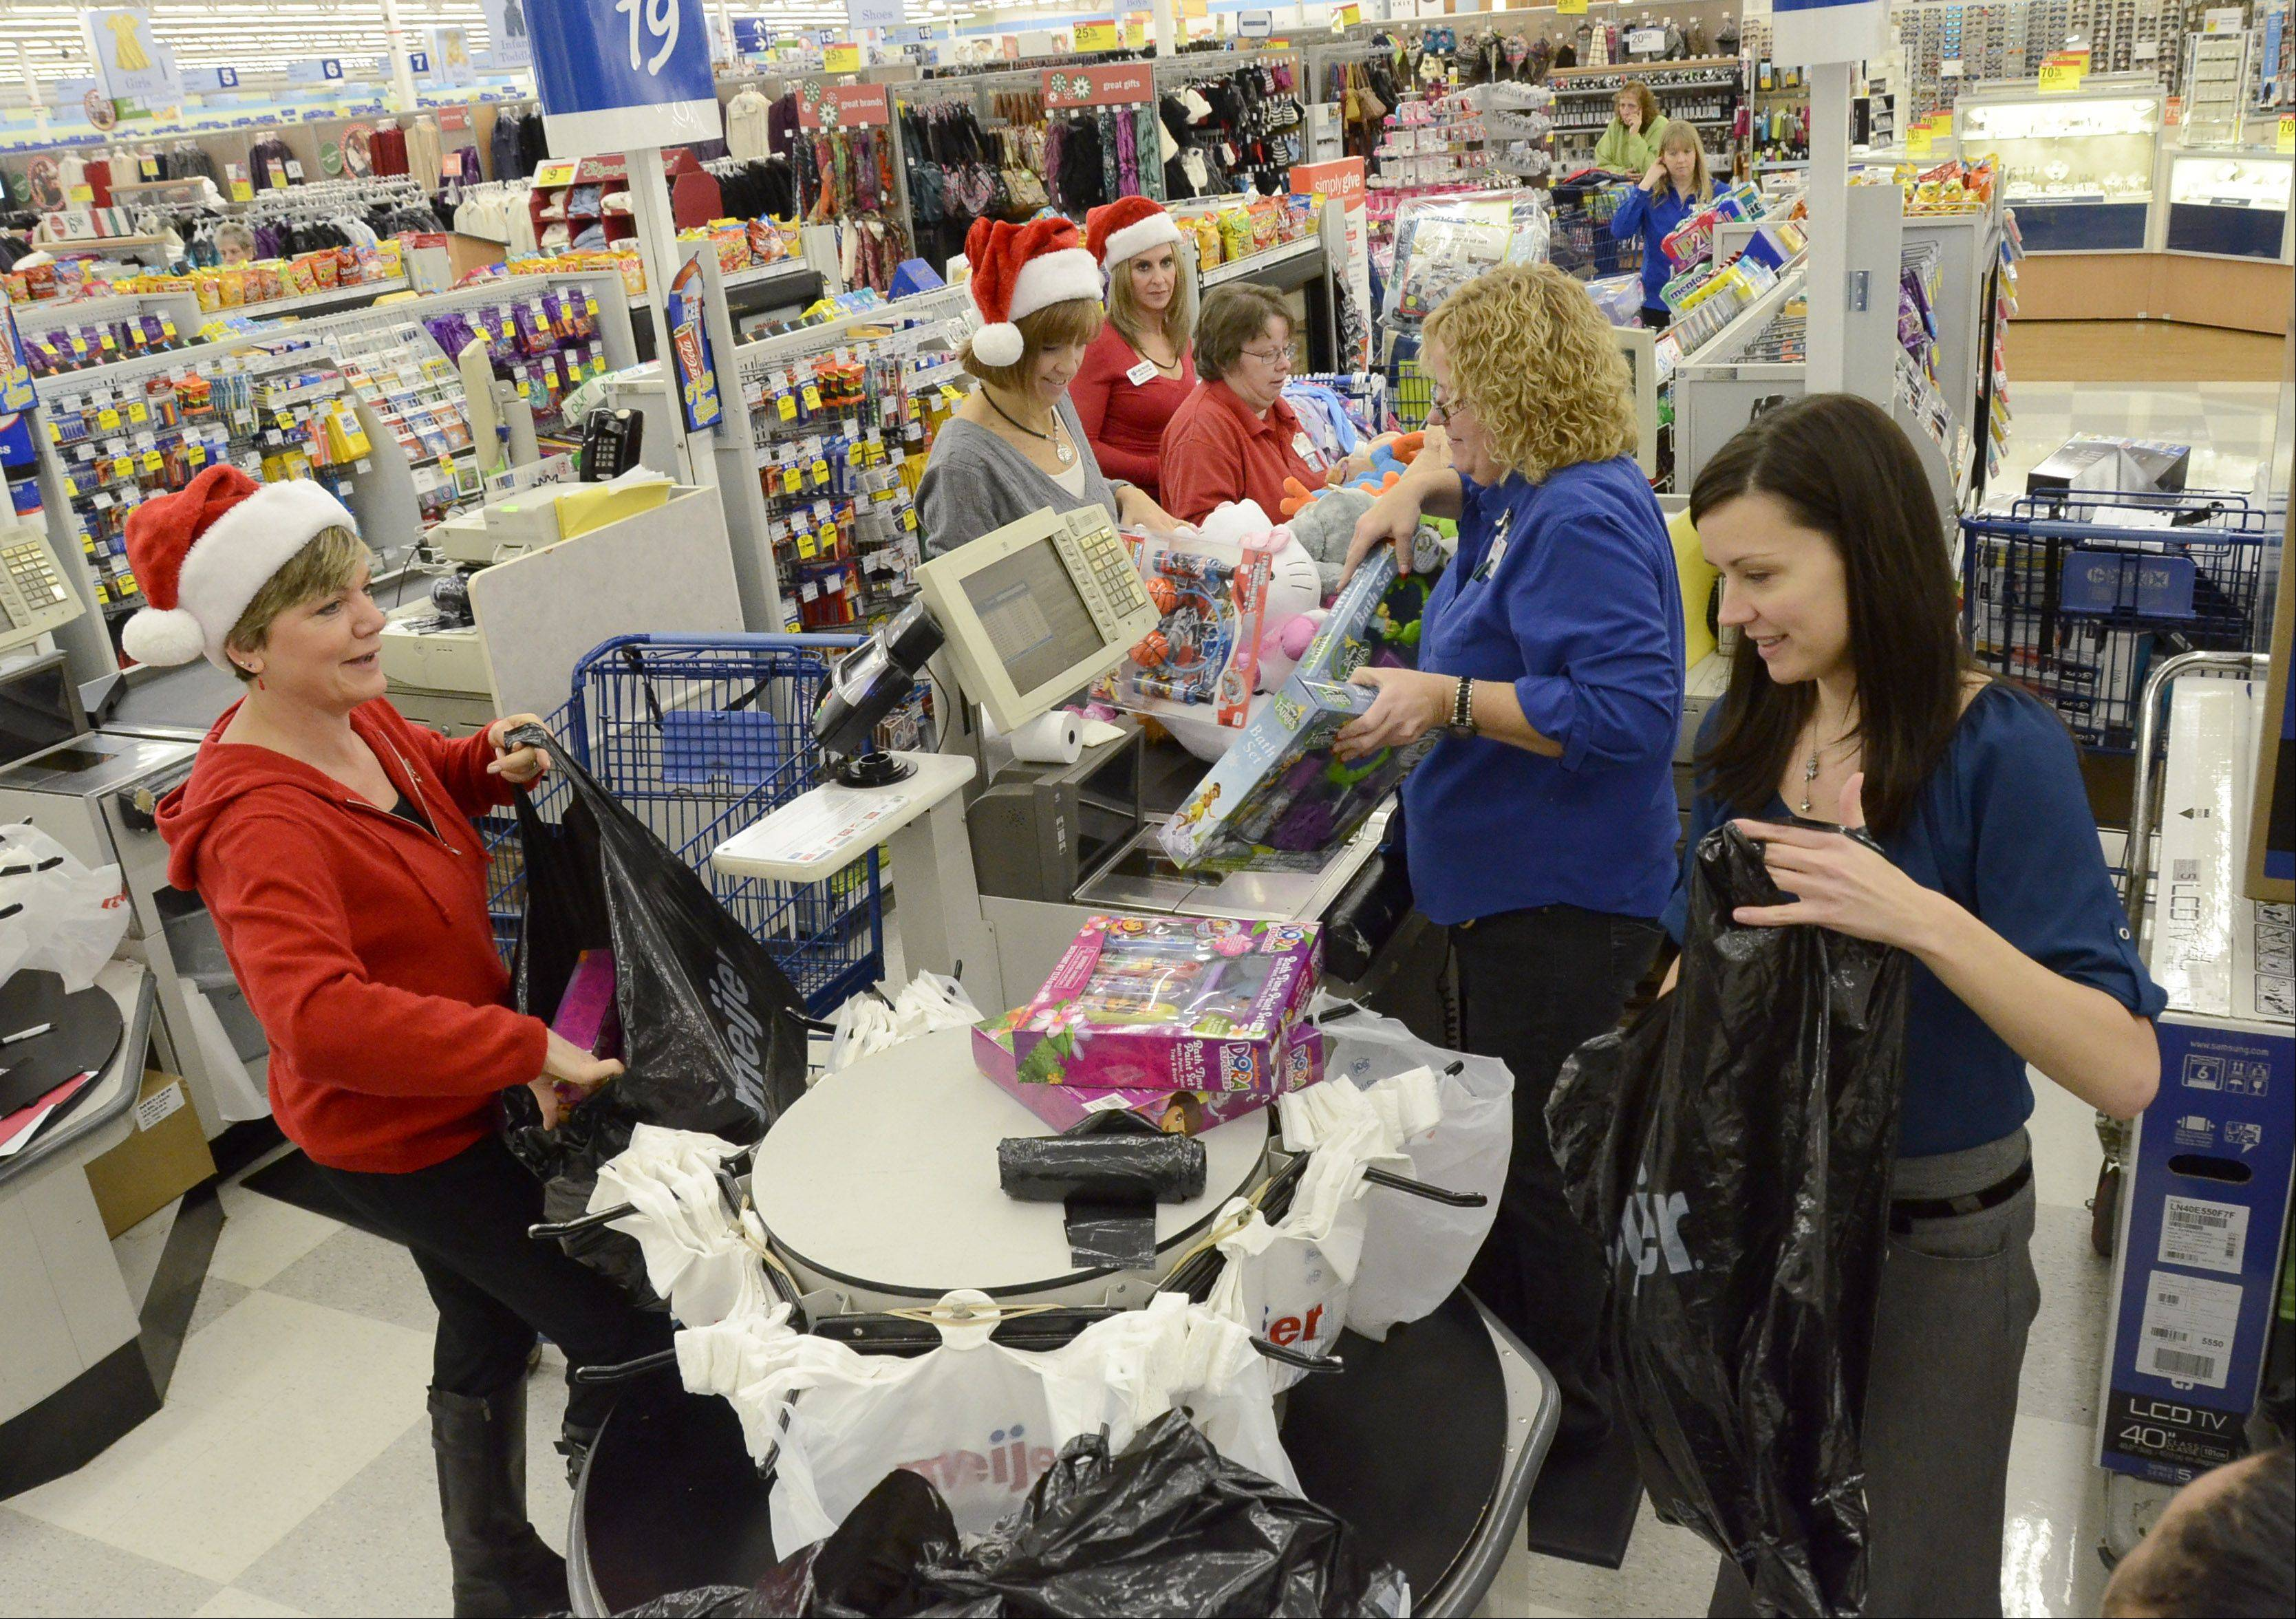 Santa's helpers from the Daily Herald load up toys for the Hope for the Holidays campaign at the Meijer store in Rolling Meadows.